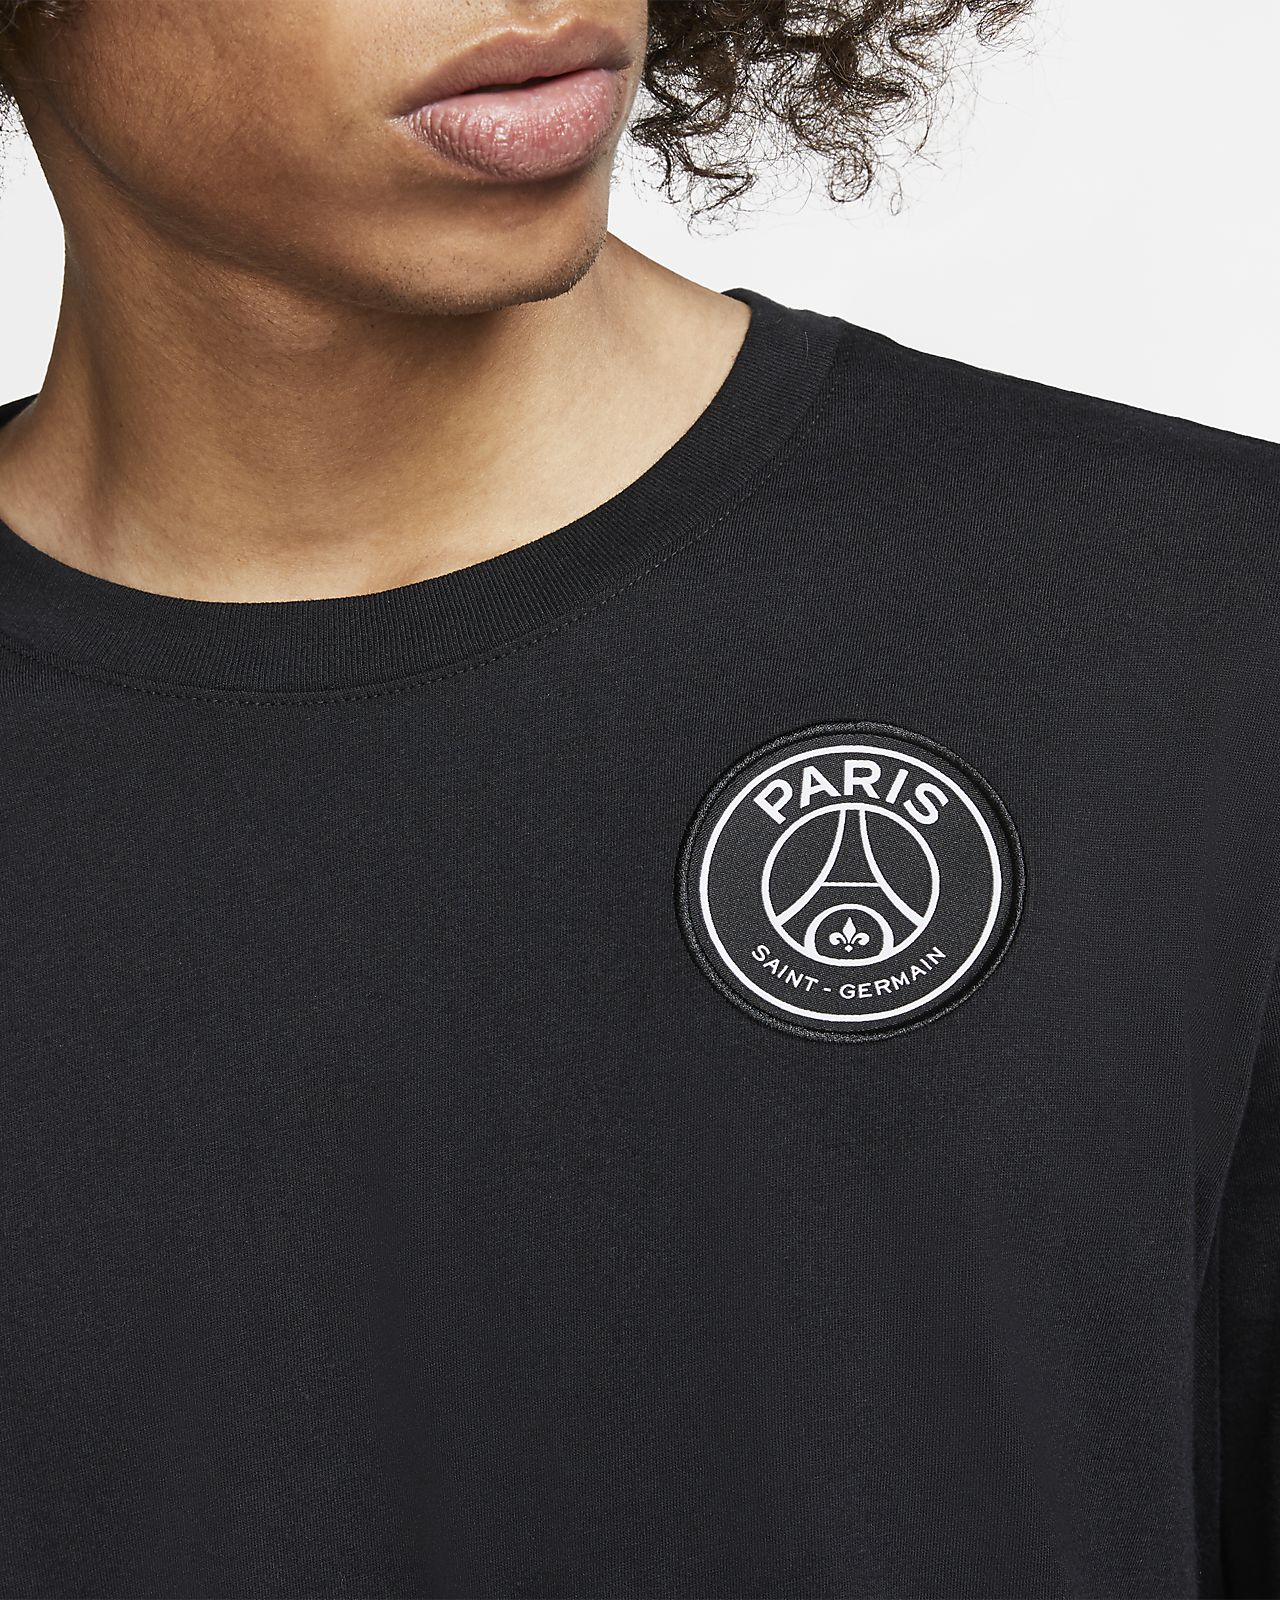 new styles ac254 df185 Paris Saint-Germain Men's Long-Sleeve T-Shirt